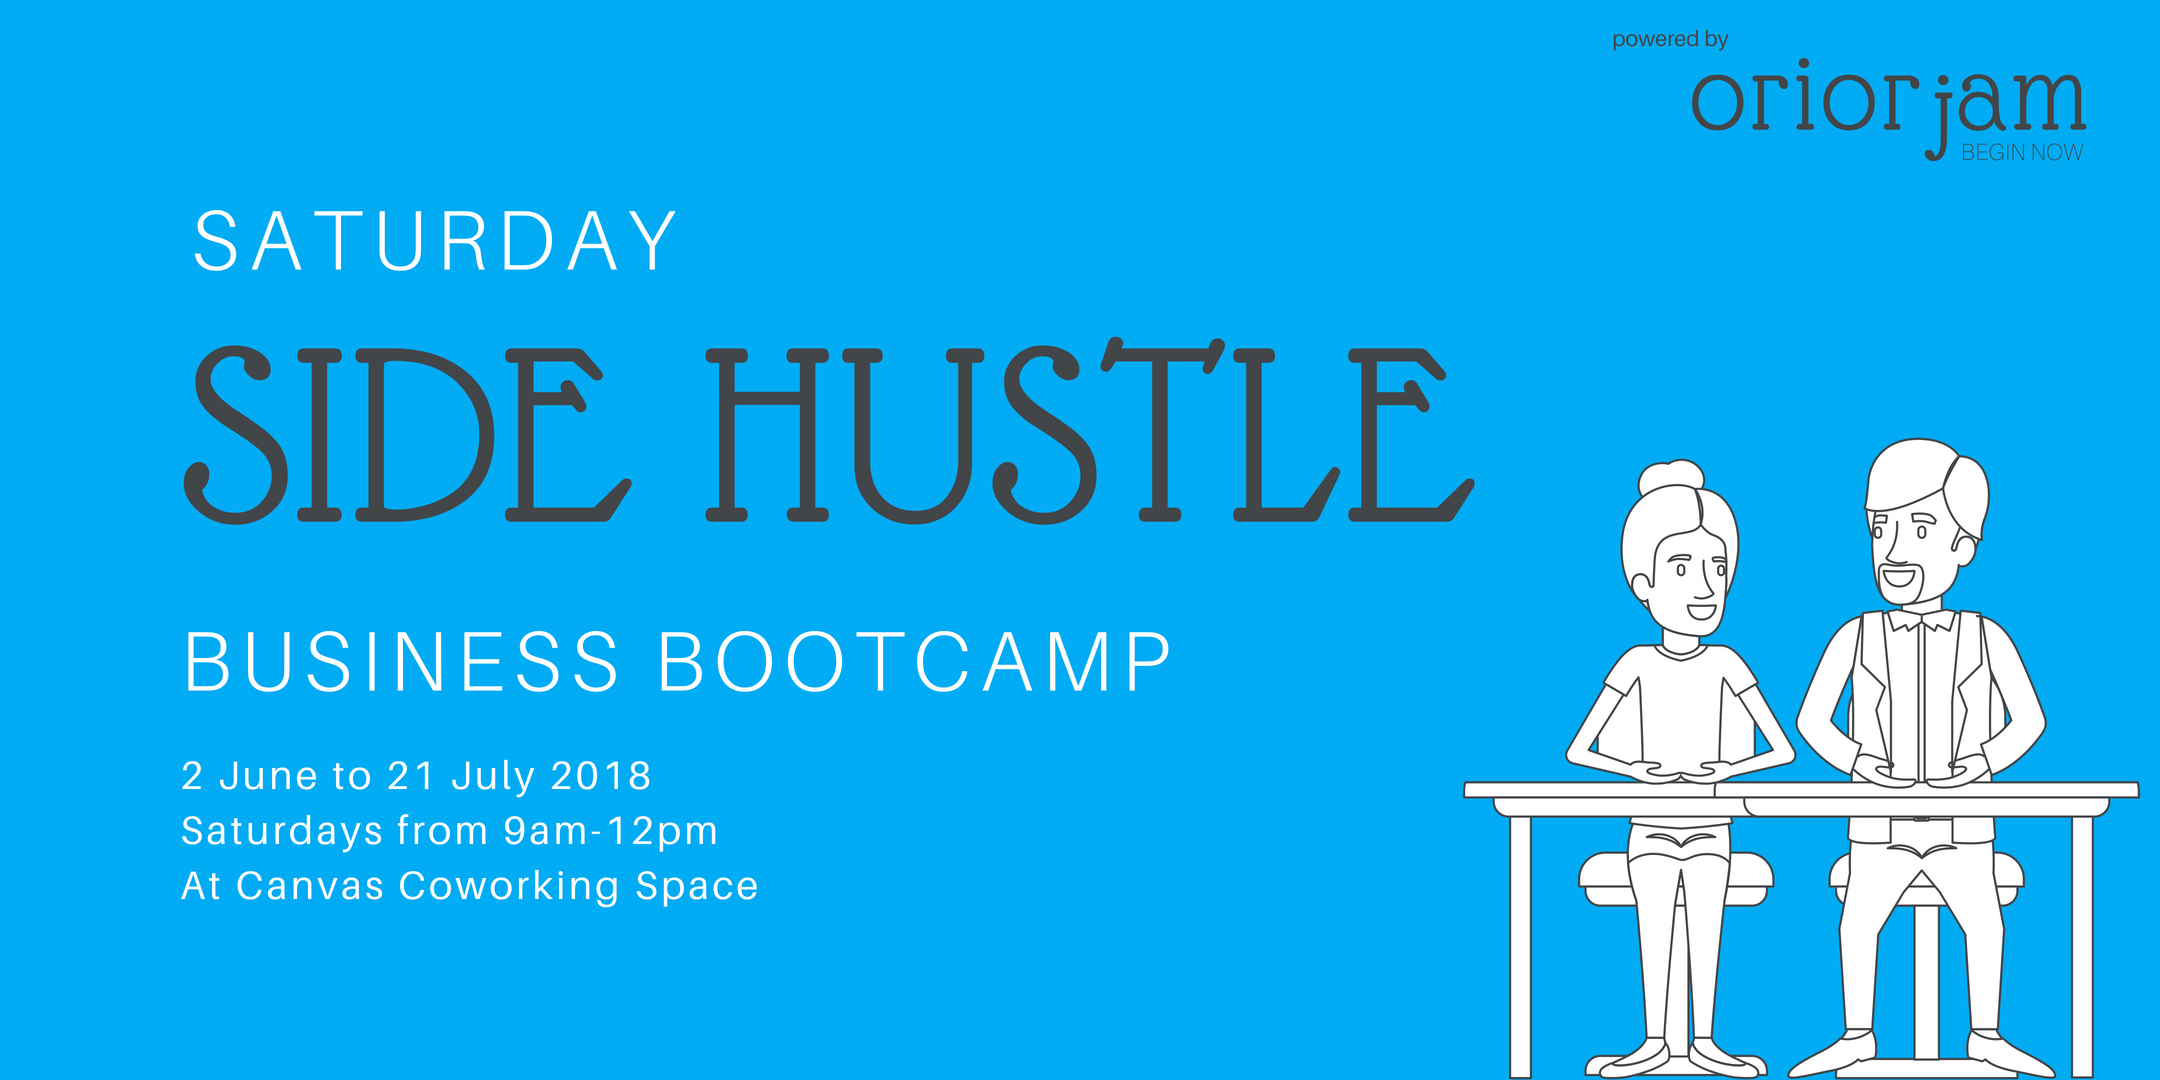 Saturday Side Hustle Business Bootcamp - 2 June to 21 July 2018